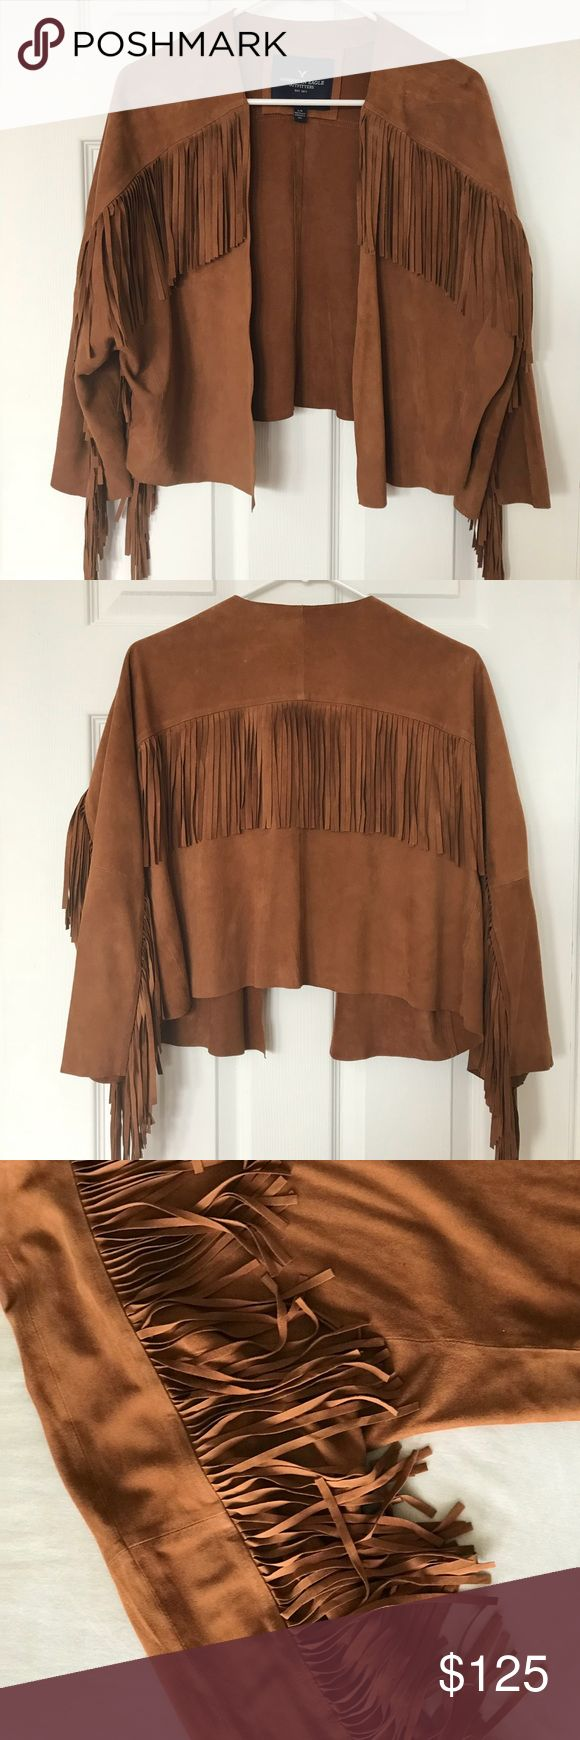 American eagle genuine suede fringe jacket Suede brown fringe jacket, Worn once in perfect condition. Made of 100% goatskin leather. American Eagle Outfitters Jackets & Coats